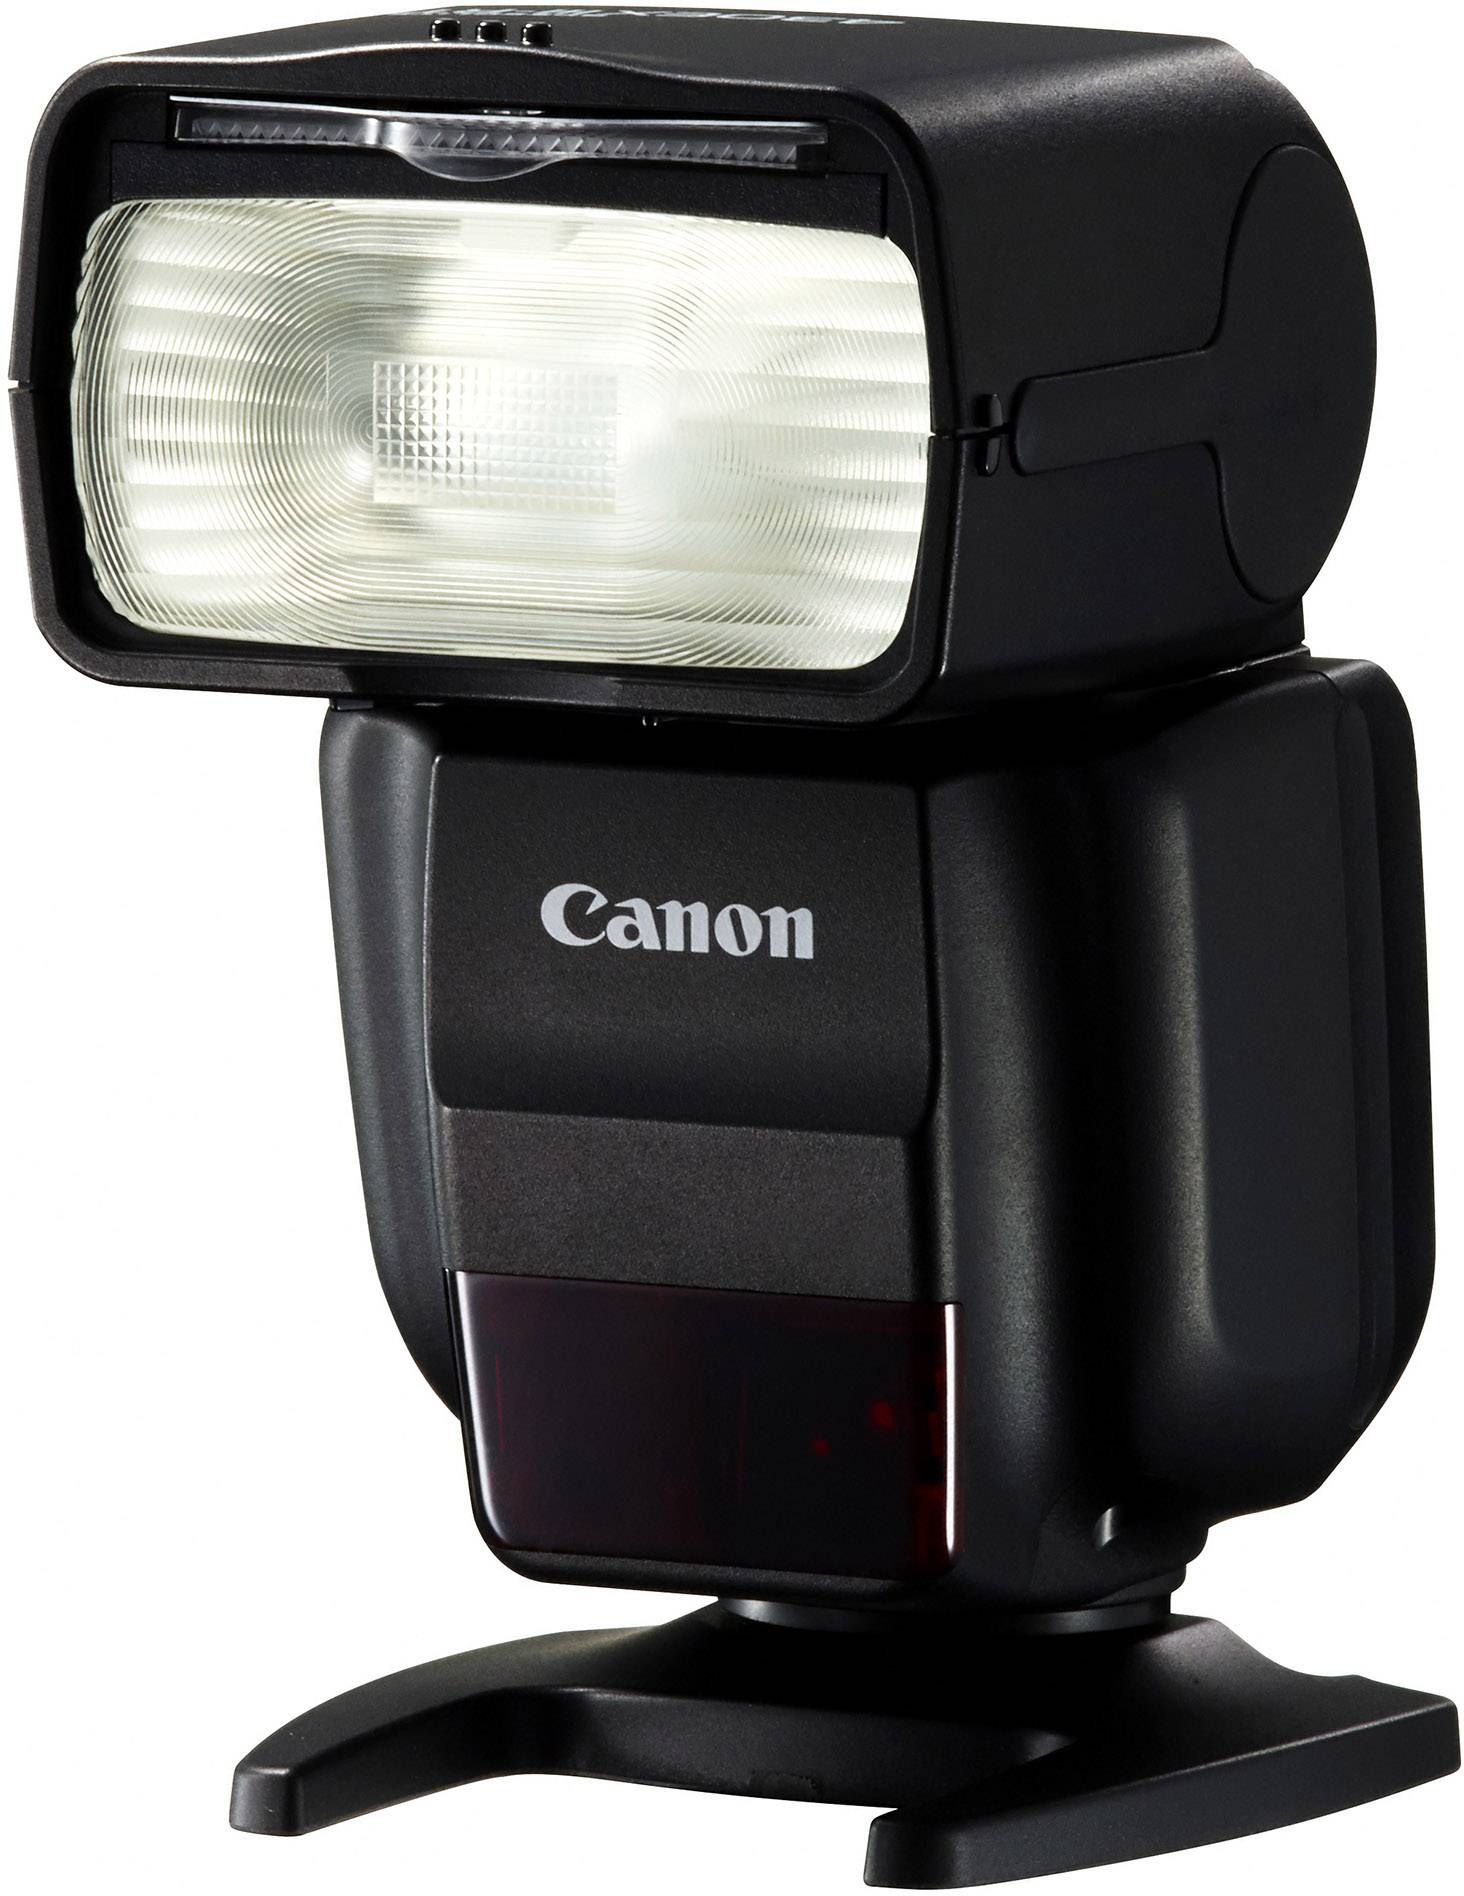 flash canon speedlite 430ex iii rt compatible with canon guide n rh conrad electronic co uk Canon Flash 430 Manual Canon Flash 430 Manual